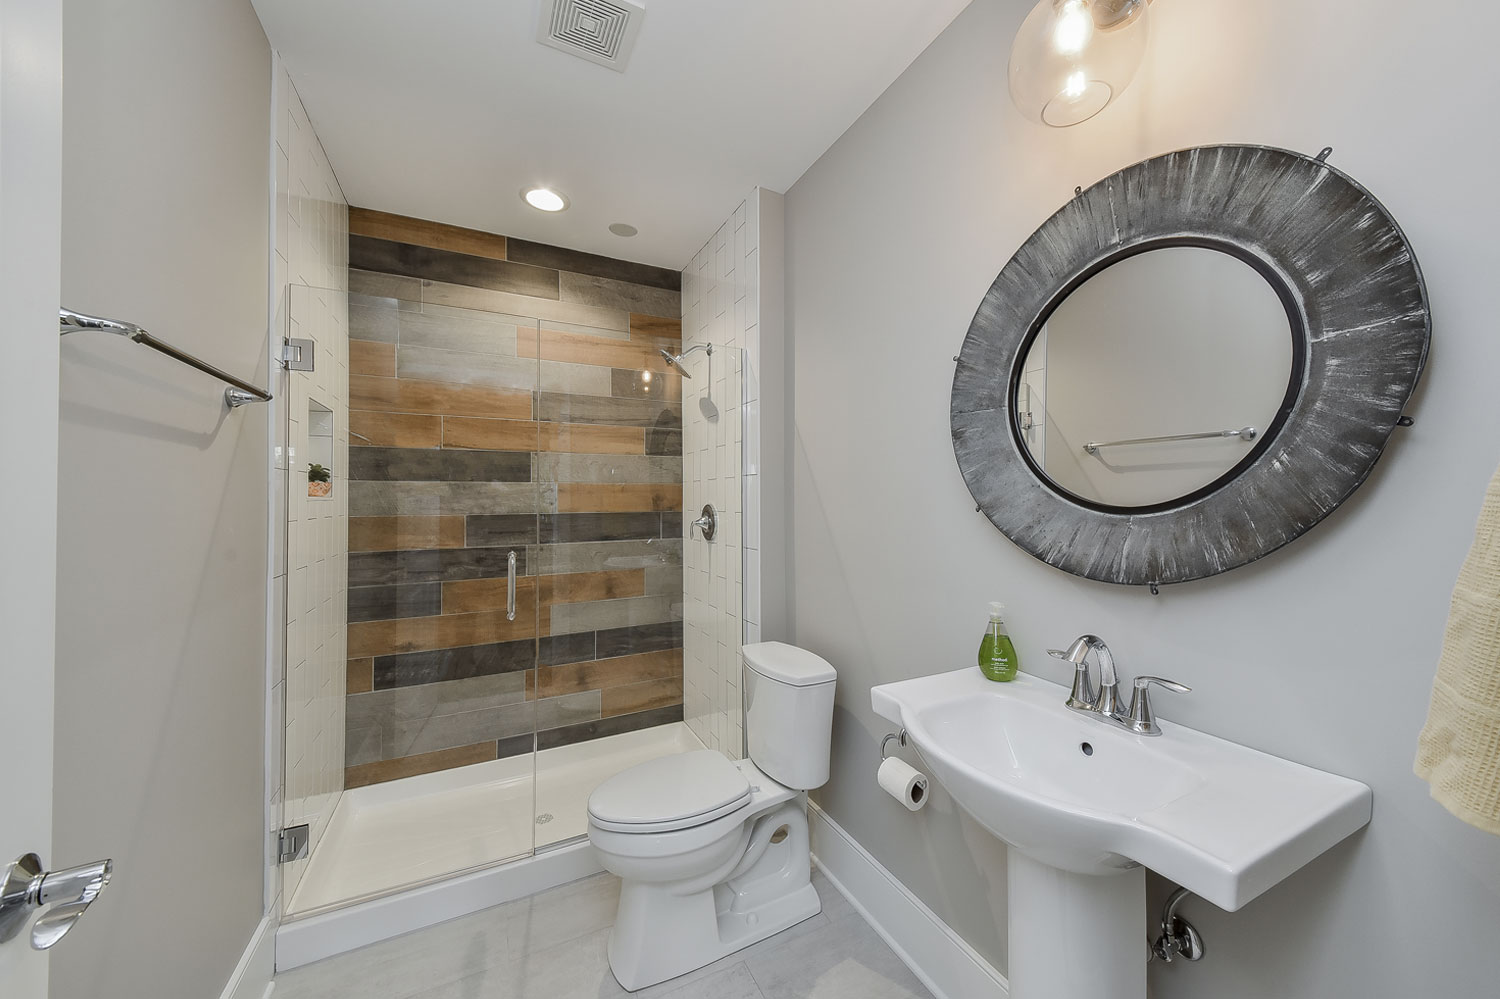 Glen Ellyn Basement Bathroom Wood Look Tile - Sebring Design Build